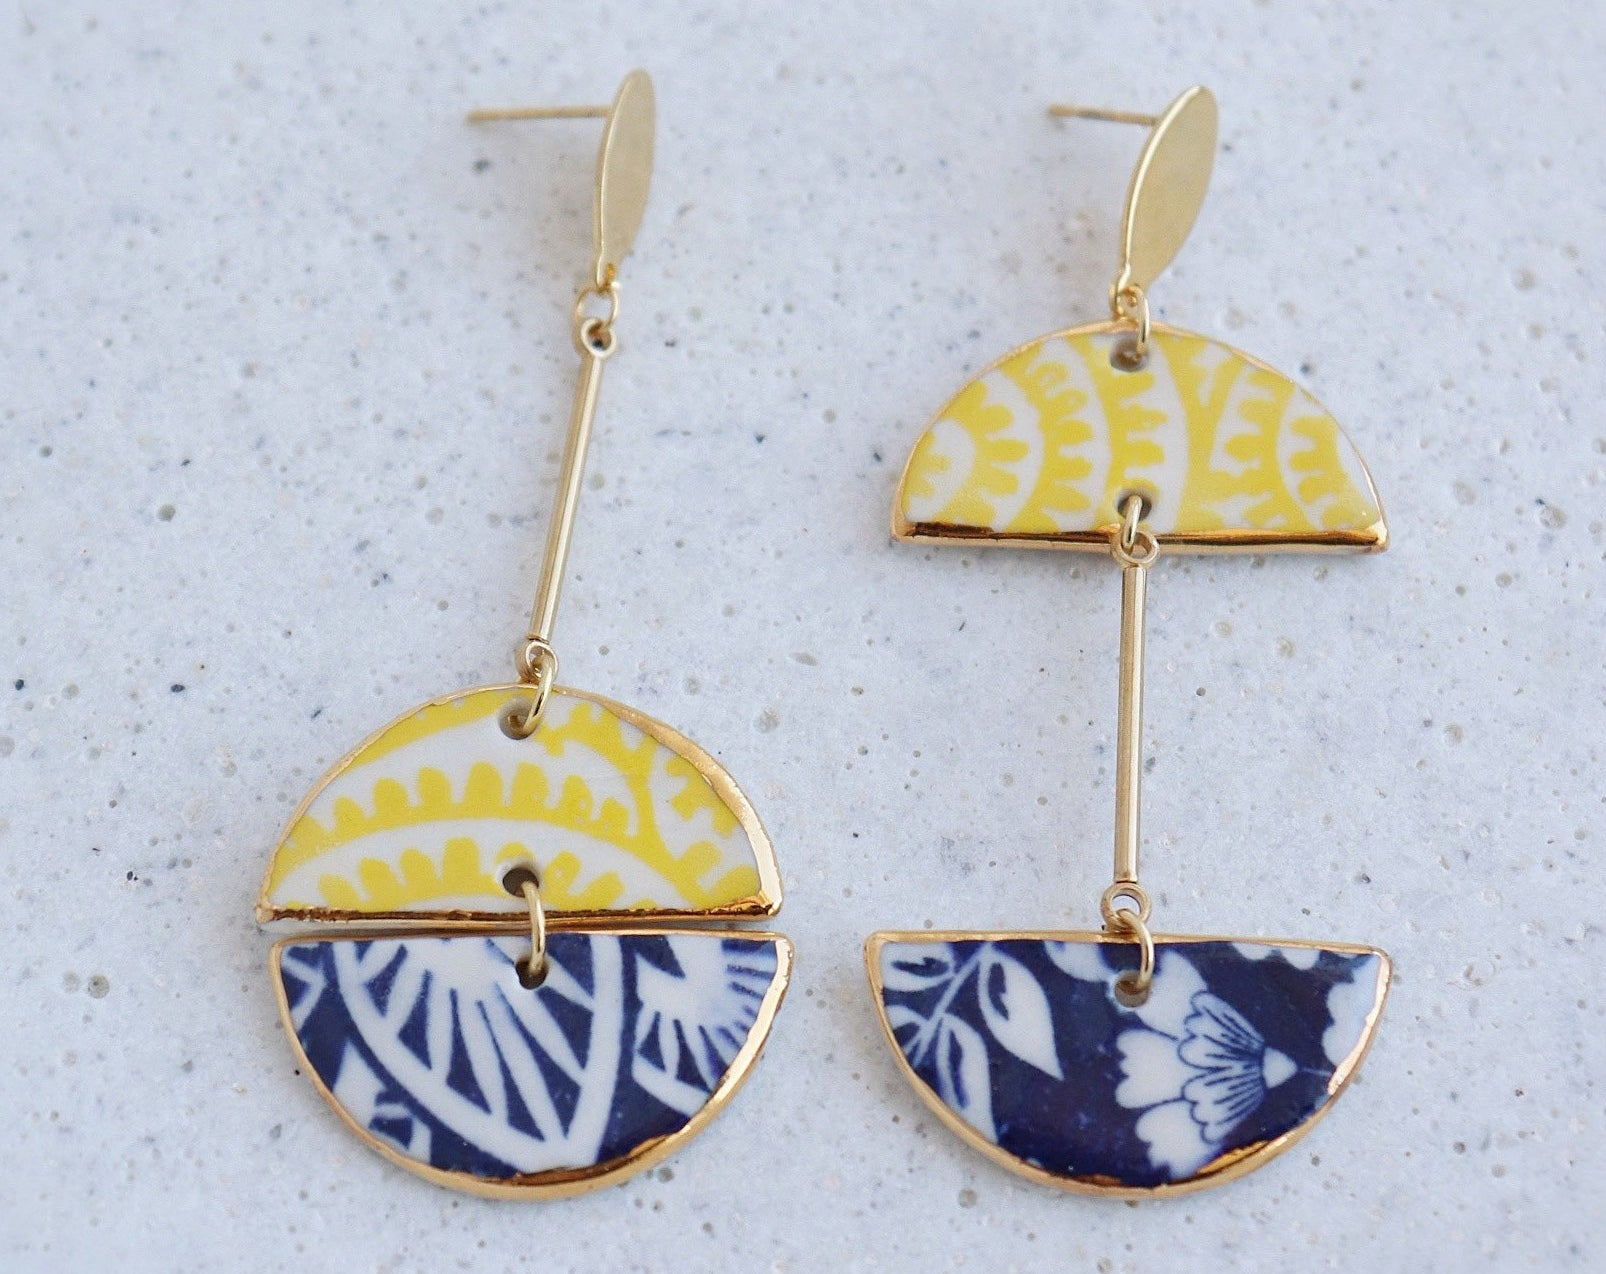 A pair of earrings on a plain background